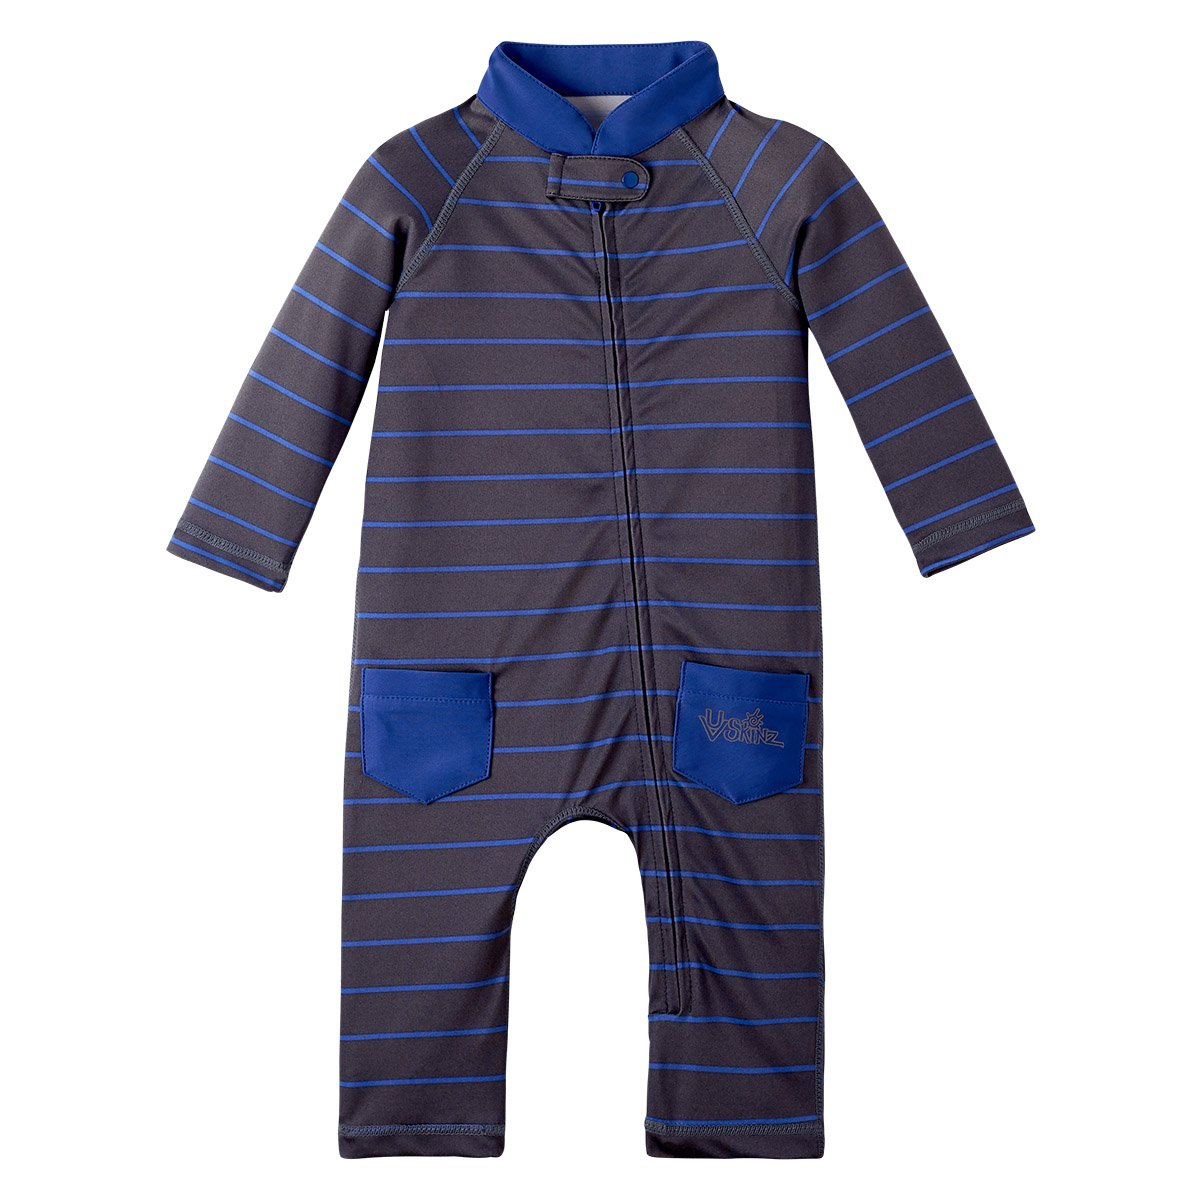 UV SKINZ UPF50+ Baby Boy Sun & Swim Suit-Charcoal Fun Stripe